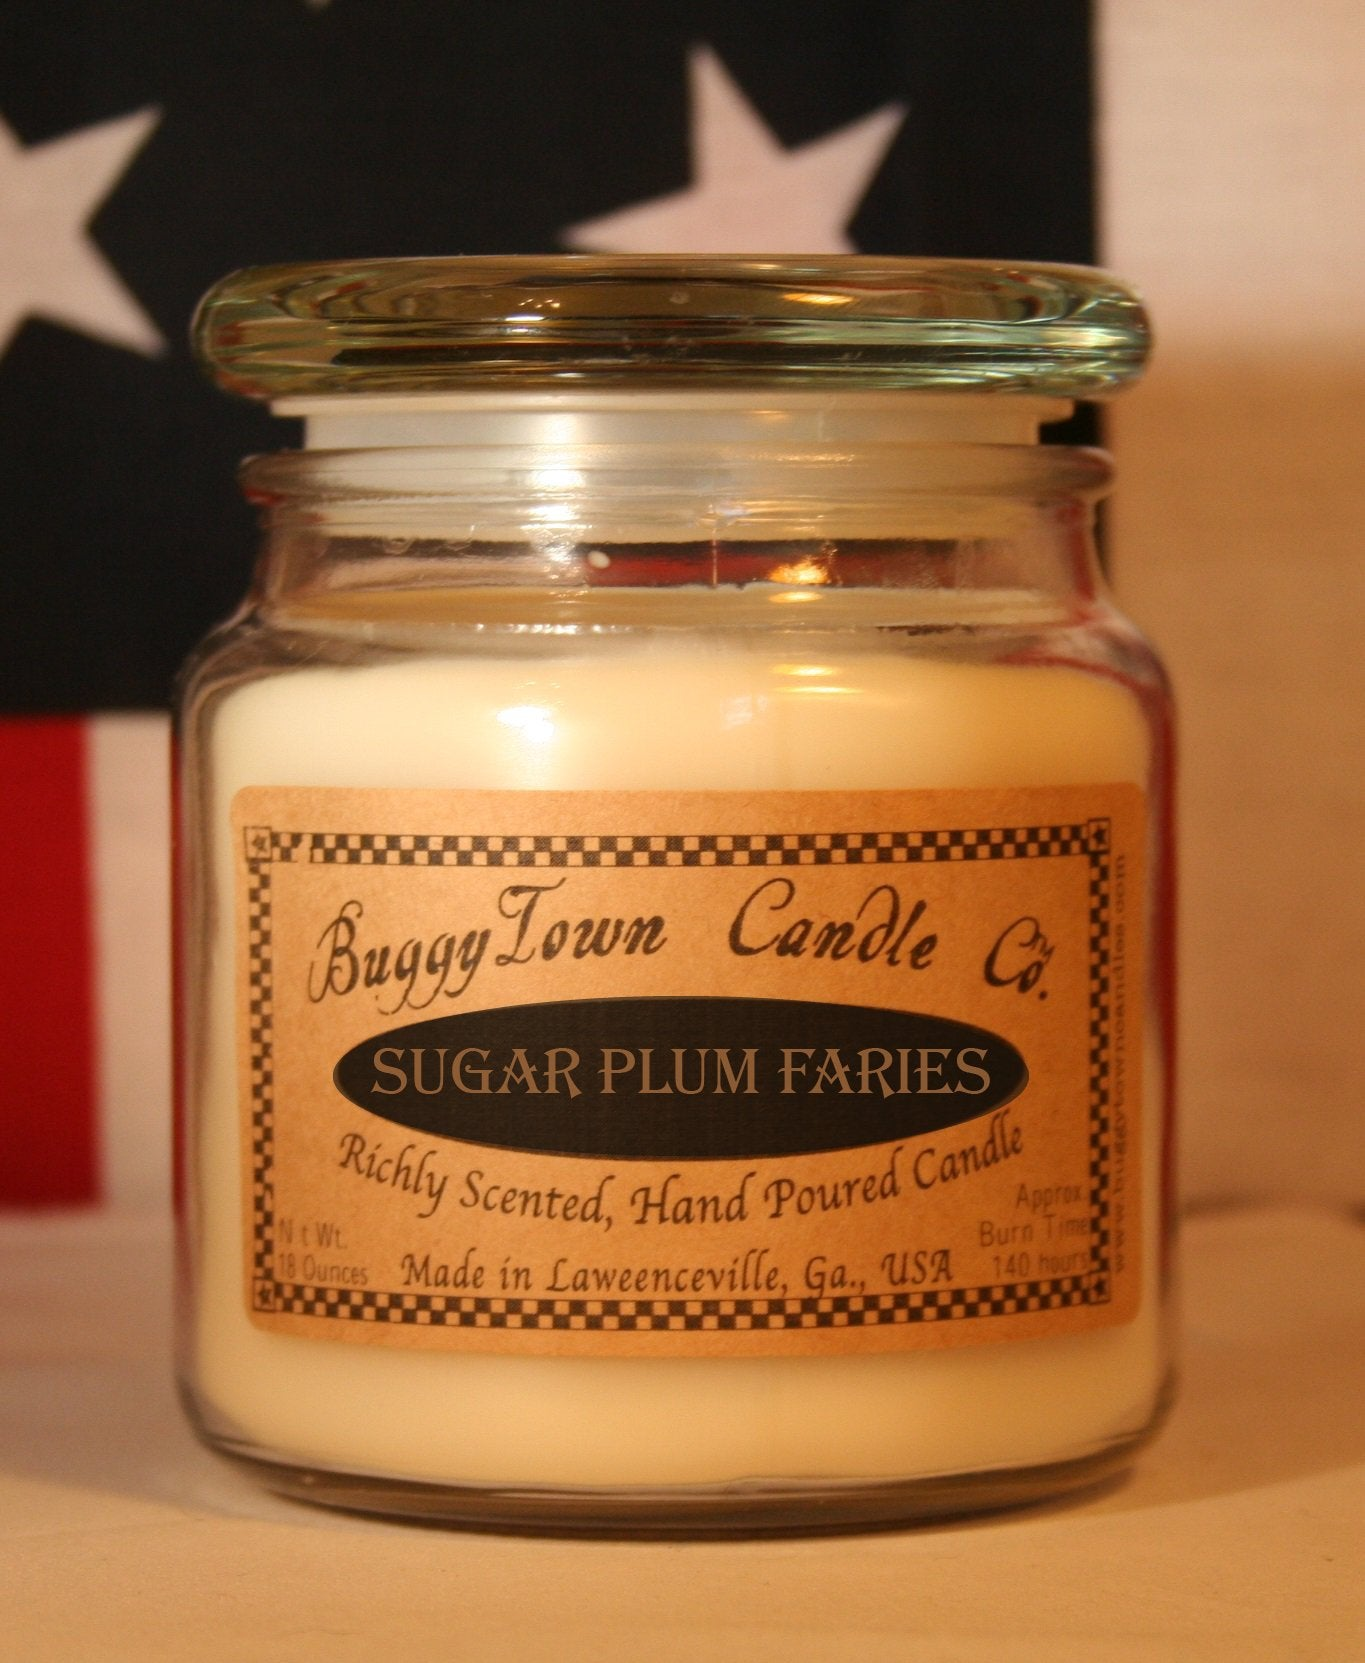 Sugar Plum Fairies Candles